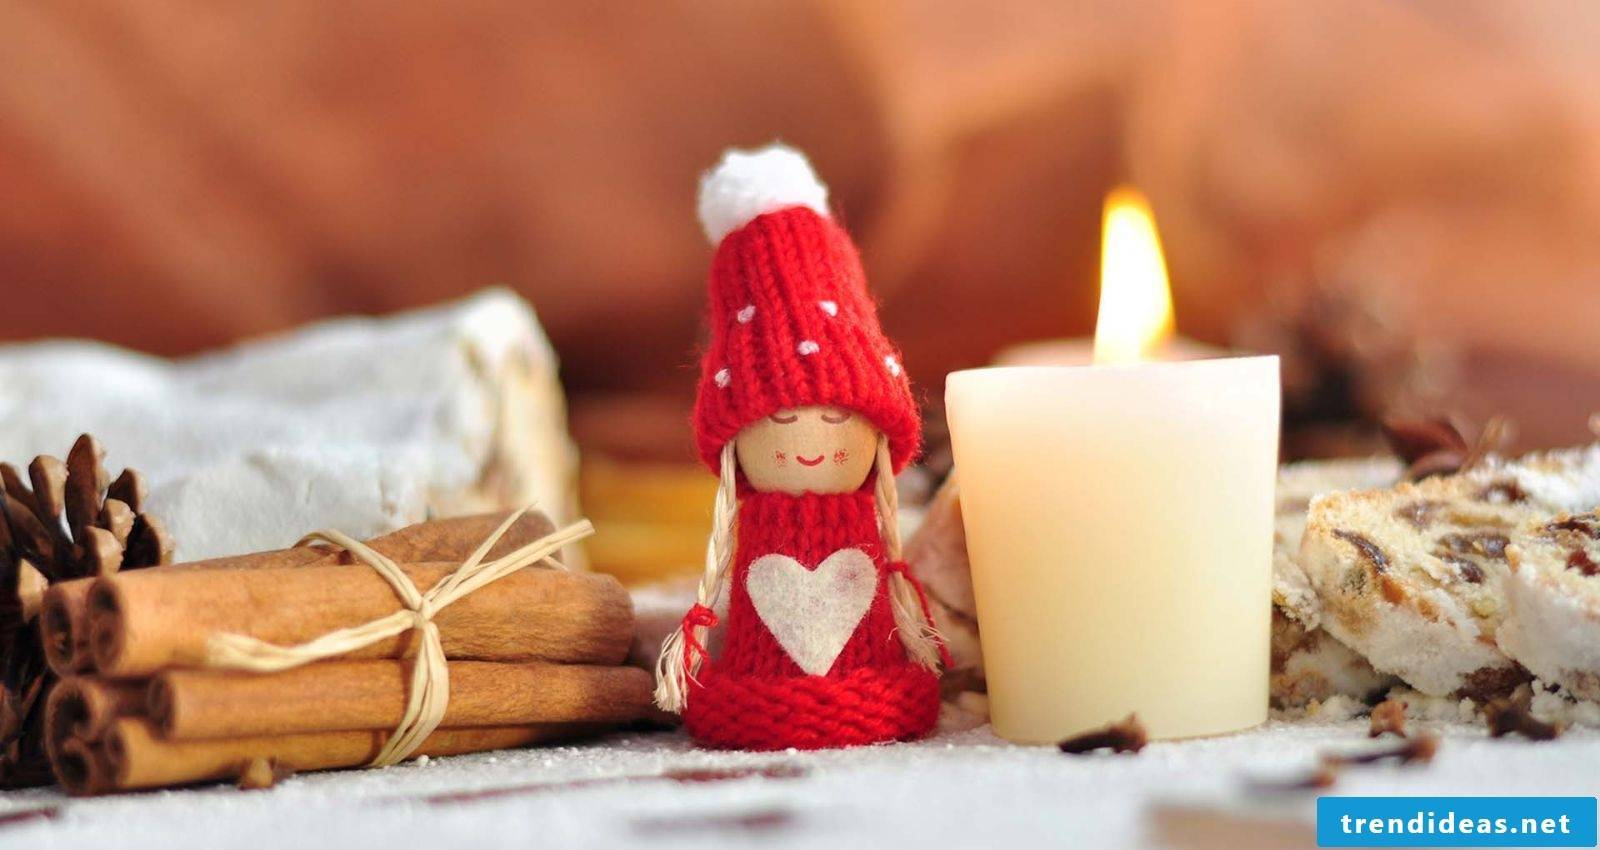 Crafting templates and creative DIY ideas for Christmas